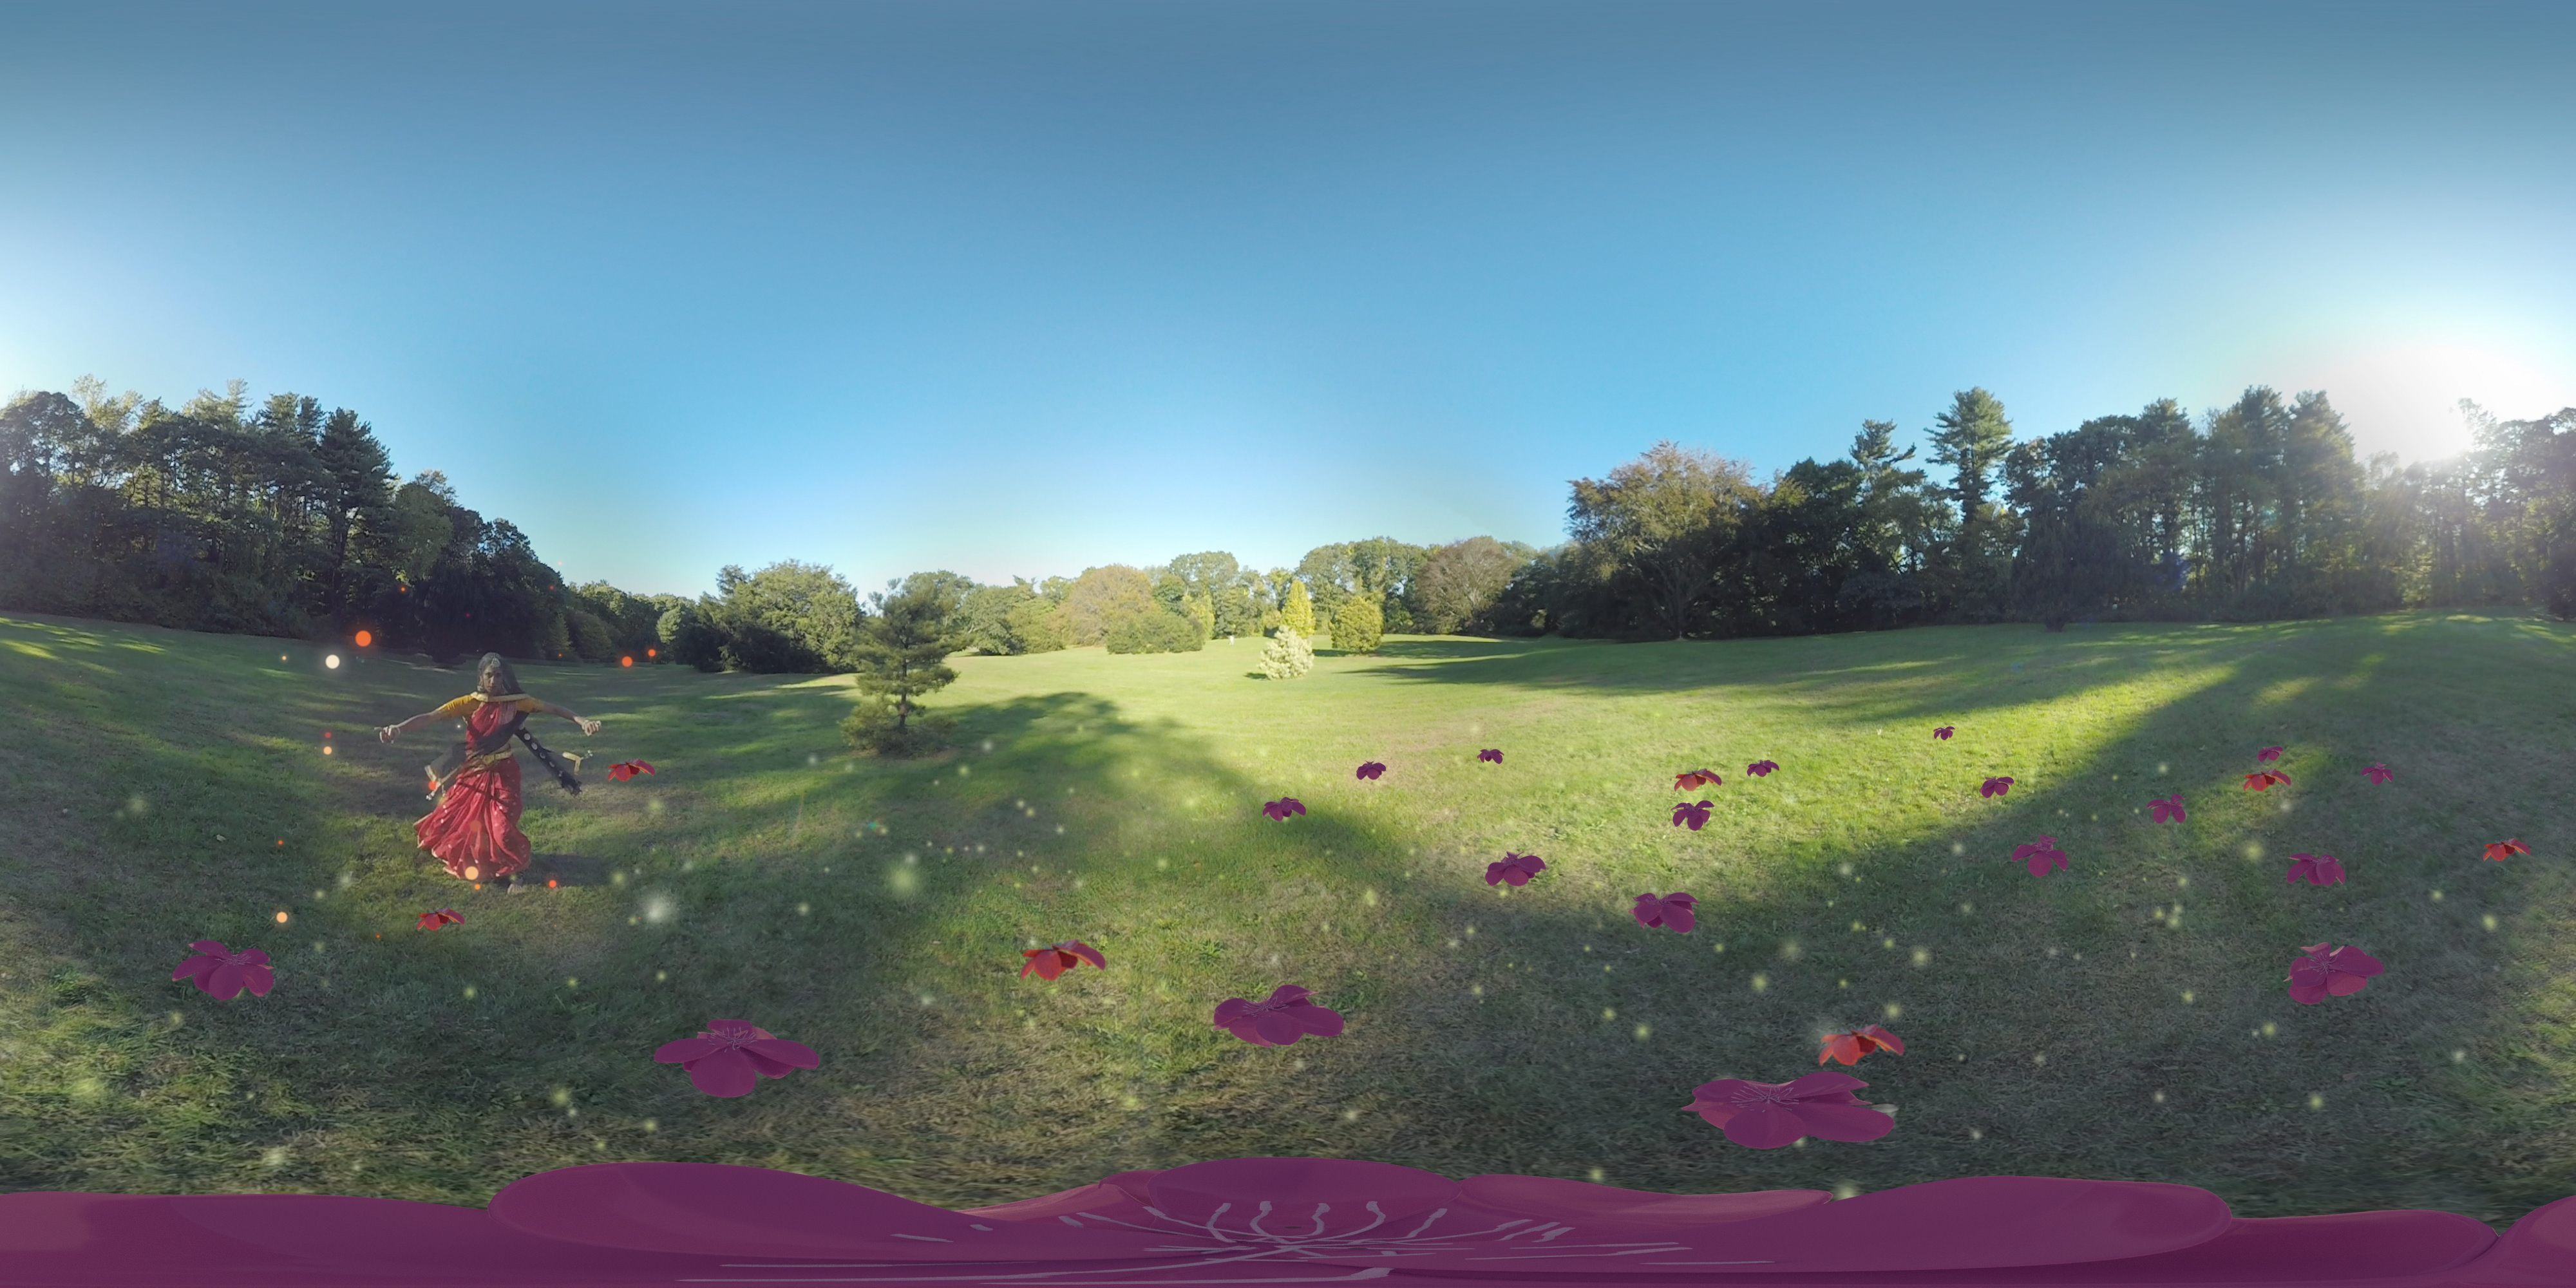 A woman in a red dress dances in a large green field with pink flowers on the grass. There is a bright blue sky and the image is somewhat distorted, since it is a 360 film to be watched with a virtual reality headset.